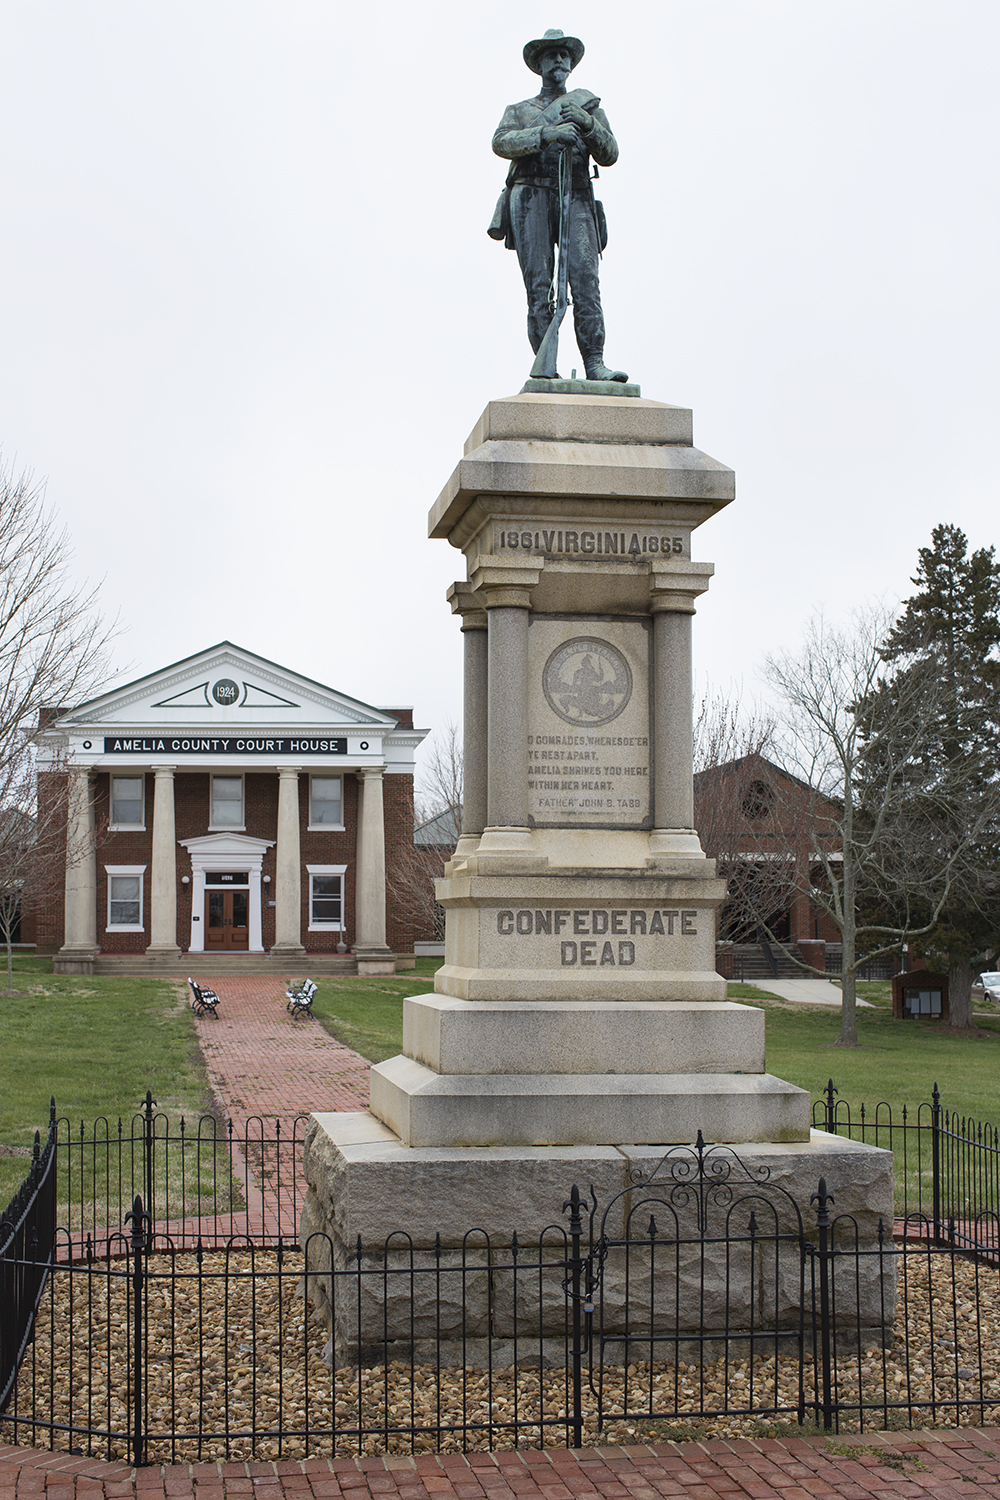 Statue in front of Amelia County Court, Amelia Court House, VA, 2013.